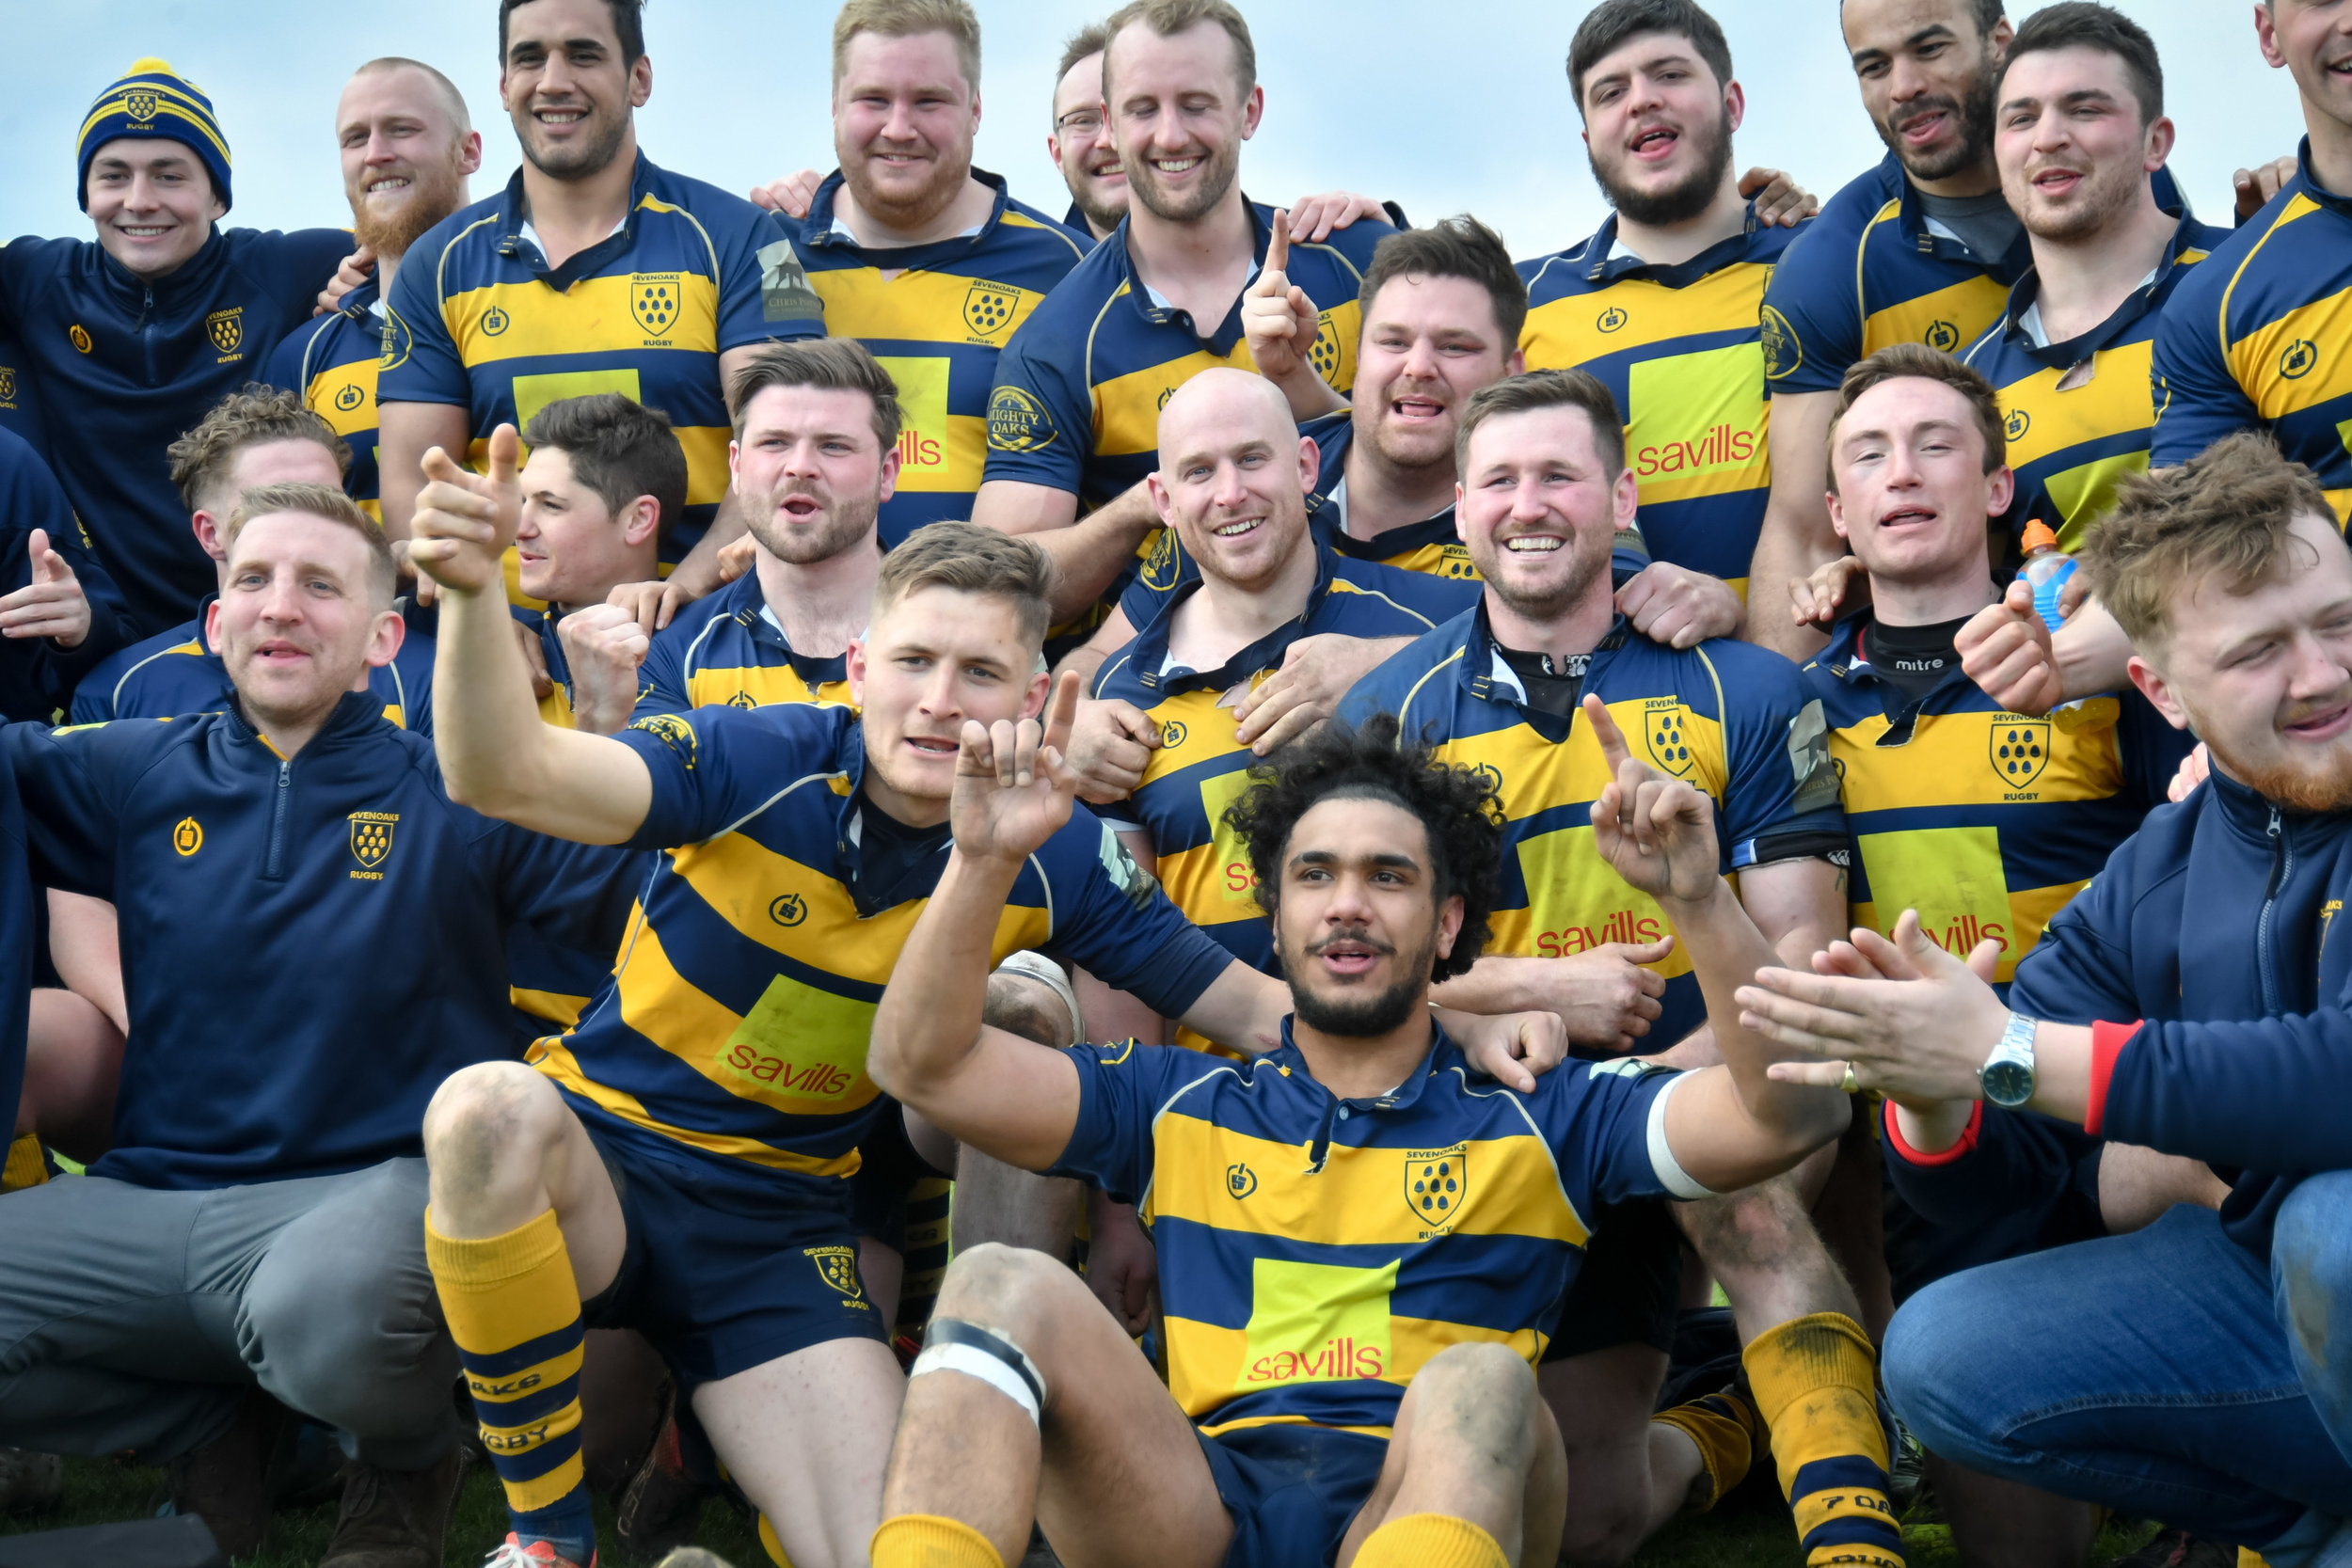 Fitting farewell! Coleman and team mates celebrate after winning London South 1 and gaining promotion. Photo Credit: David Purday